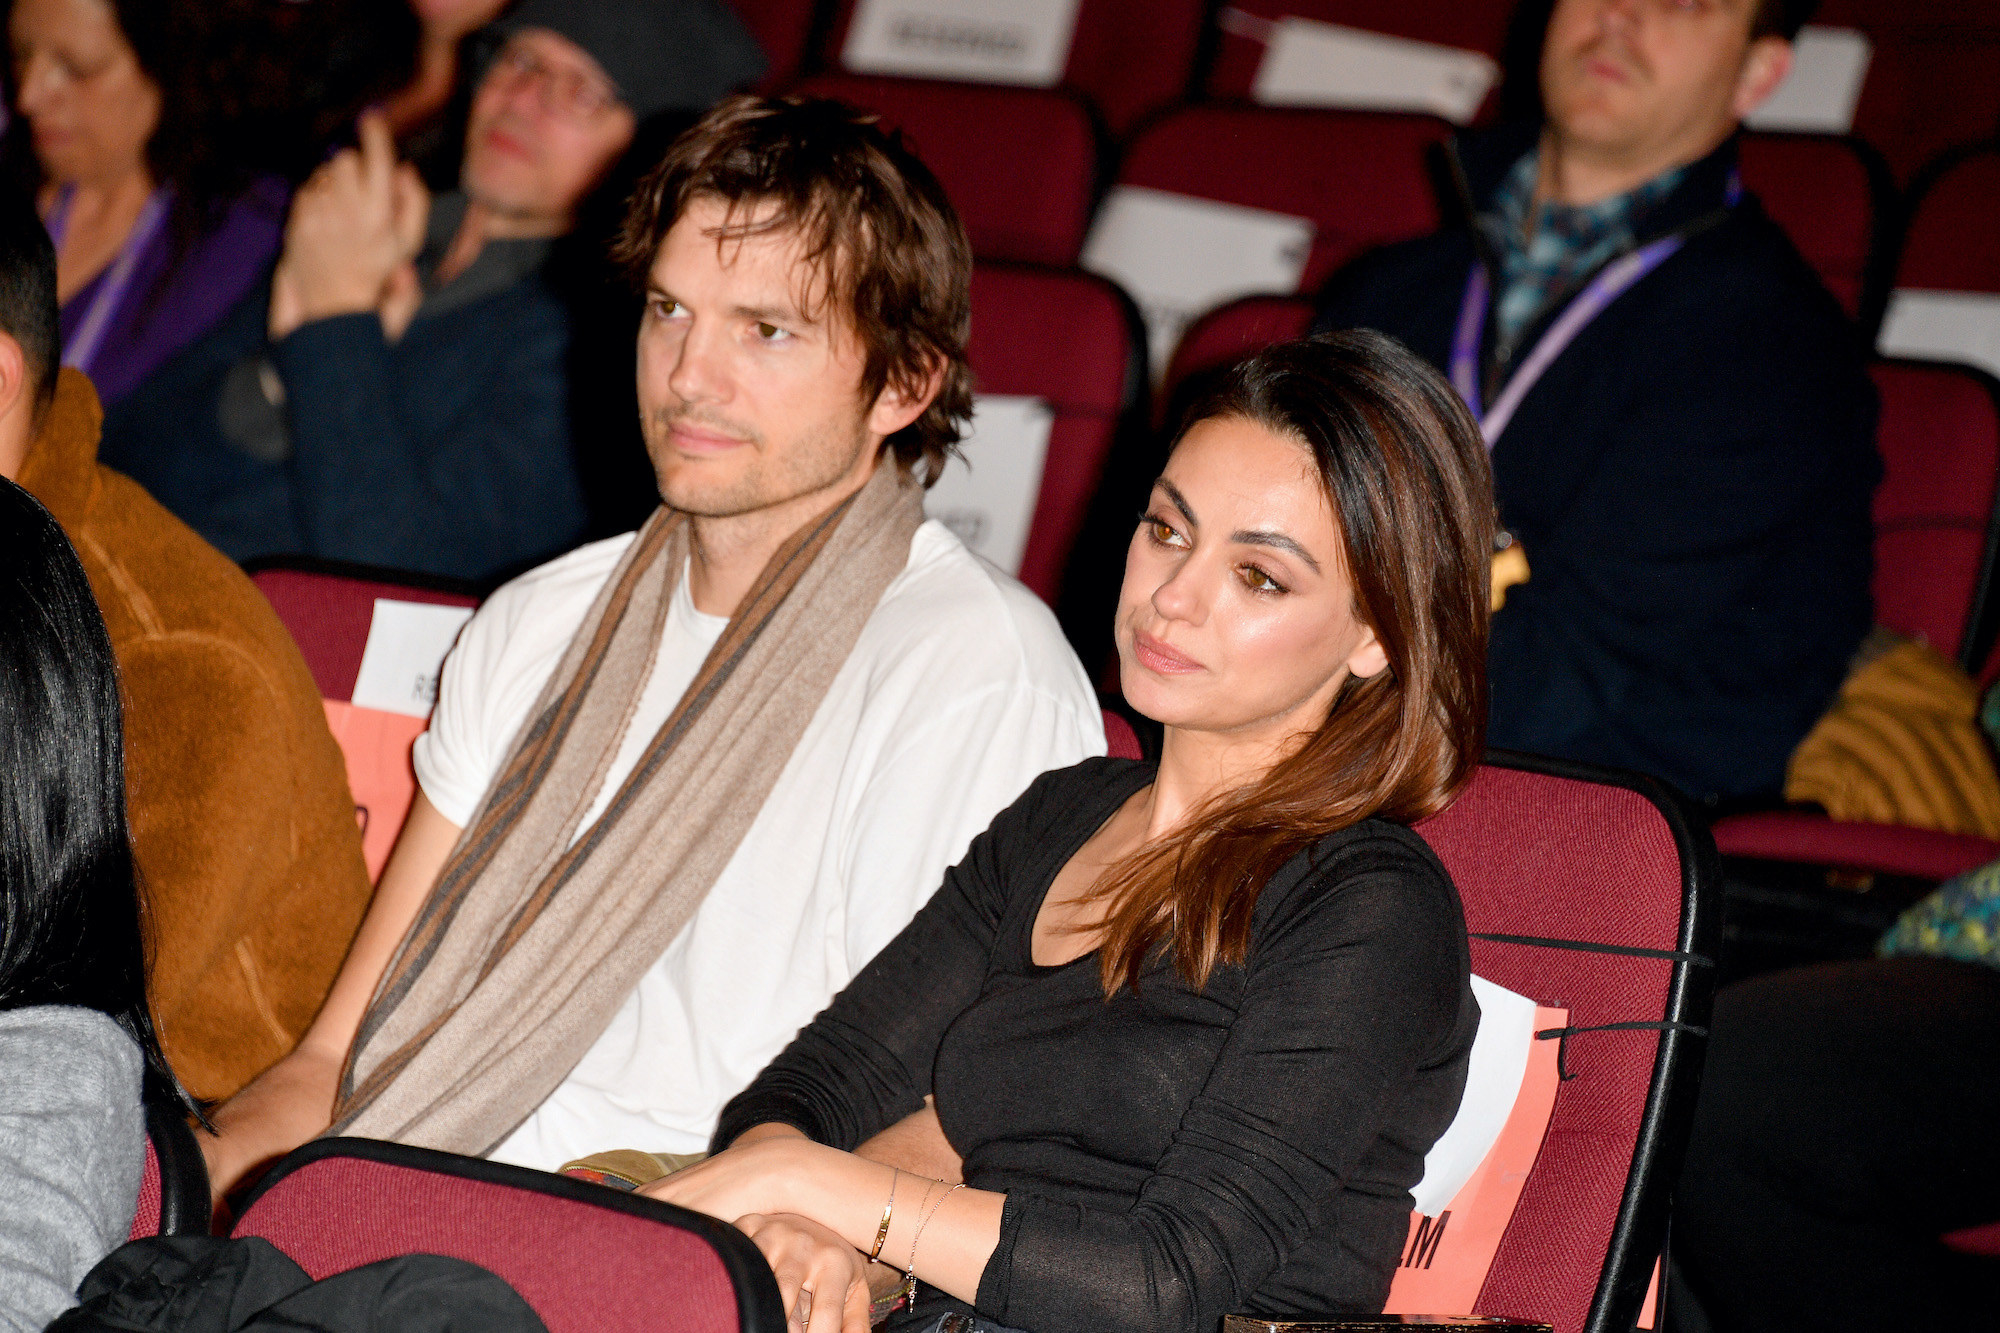 Ashton Kutcher, in a t-shirt and a scarf, and Mila Kunis, in a long-sleeved T-shirt, sitting next to each other during at the 2020 Sundance Film Festival